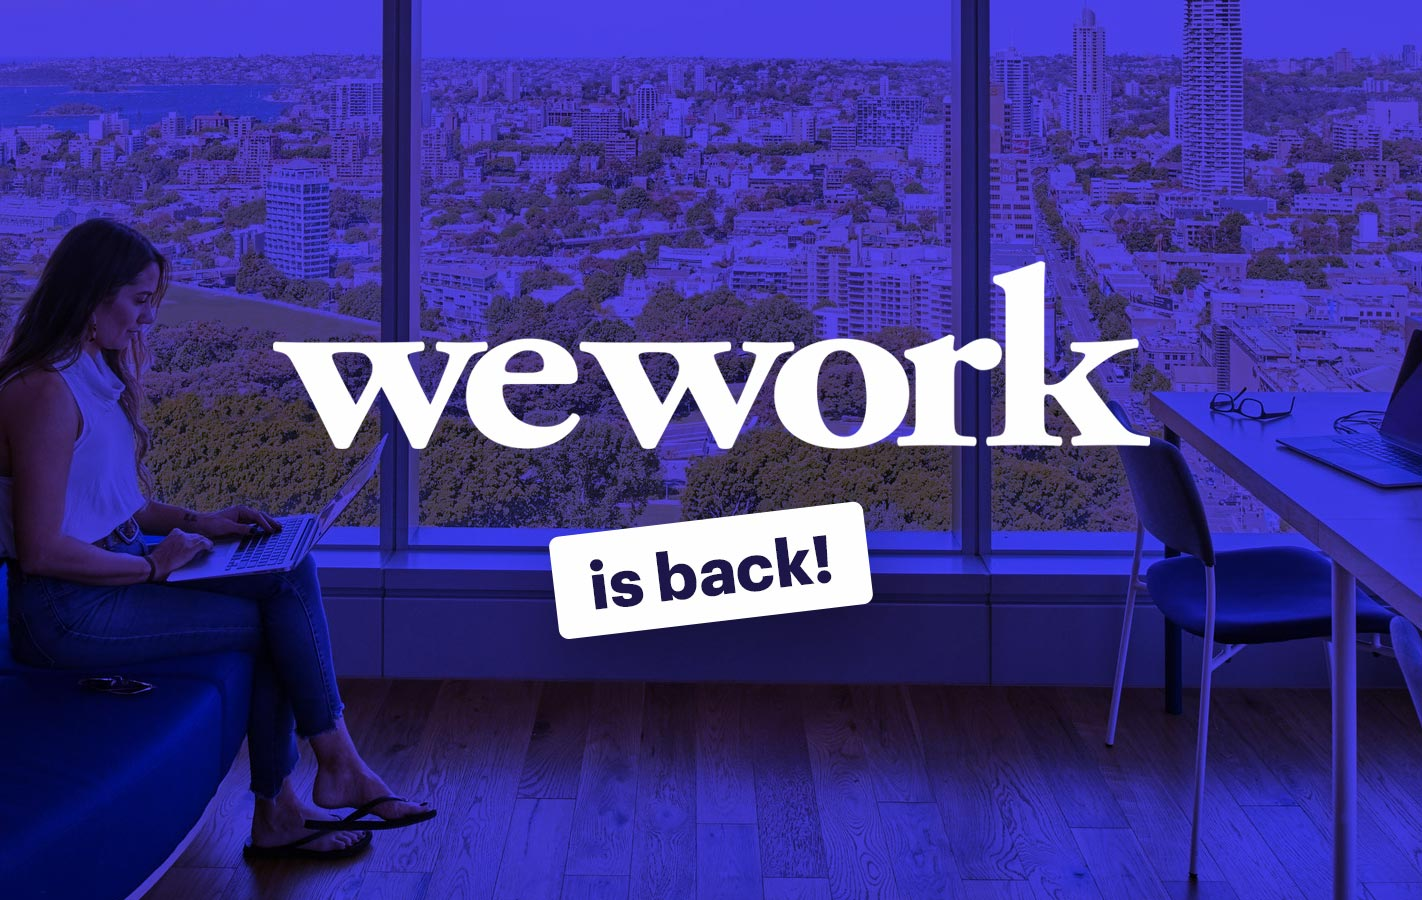 Wework is back!